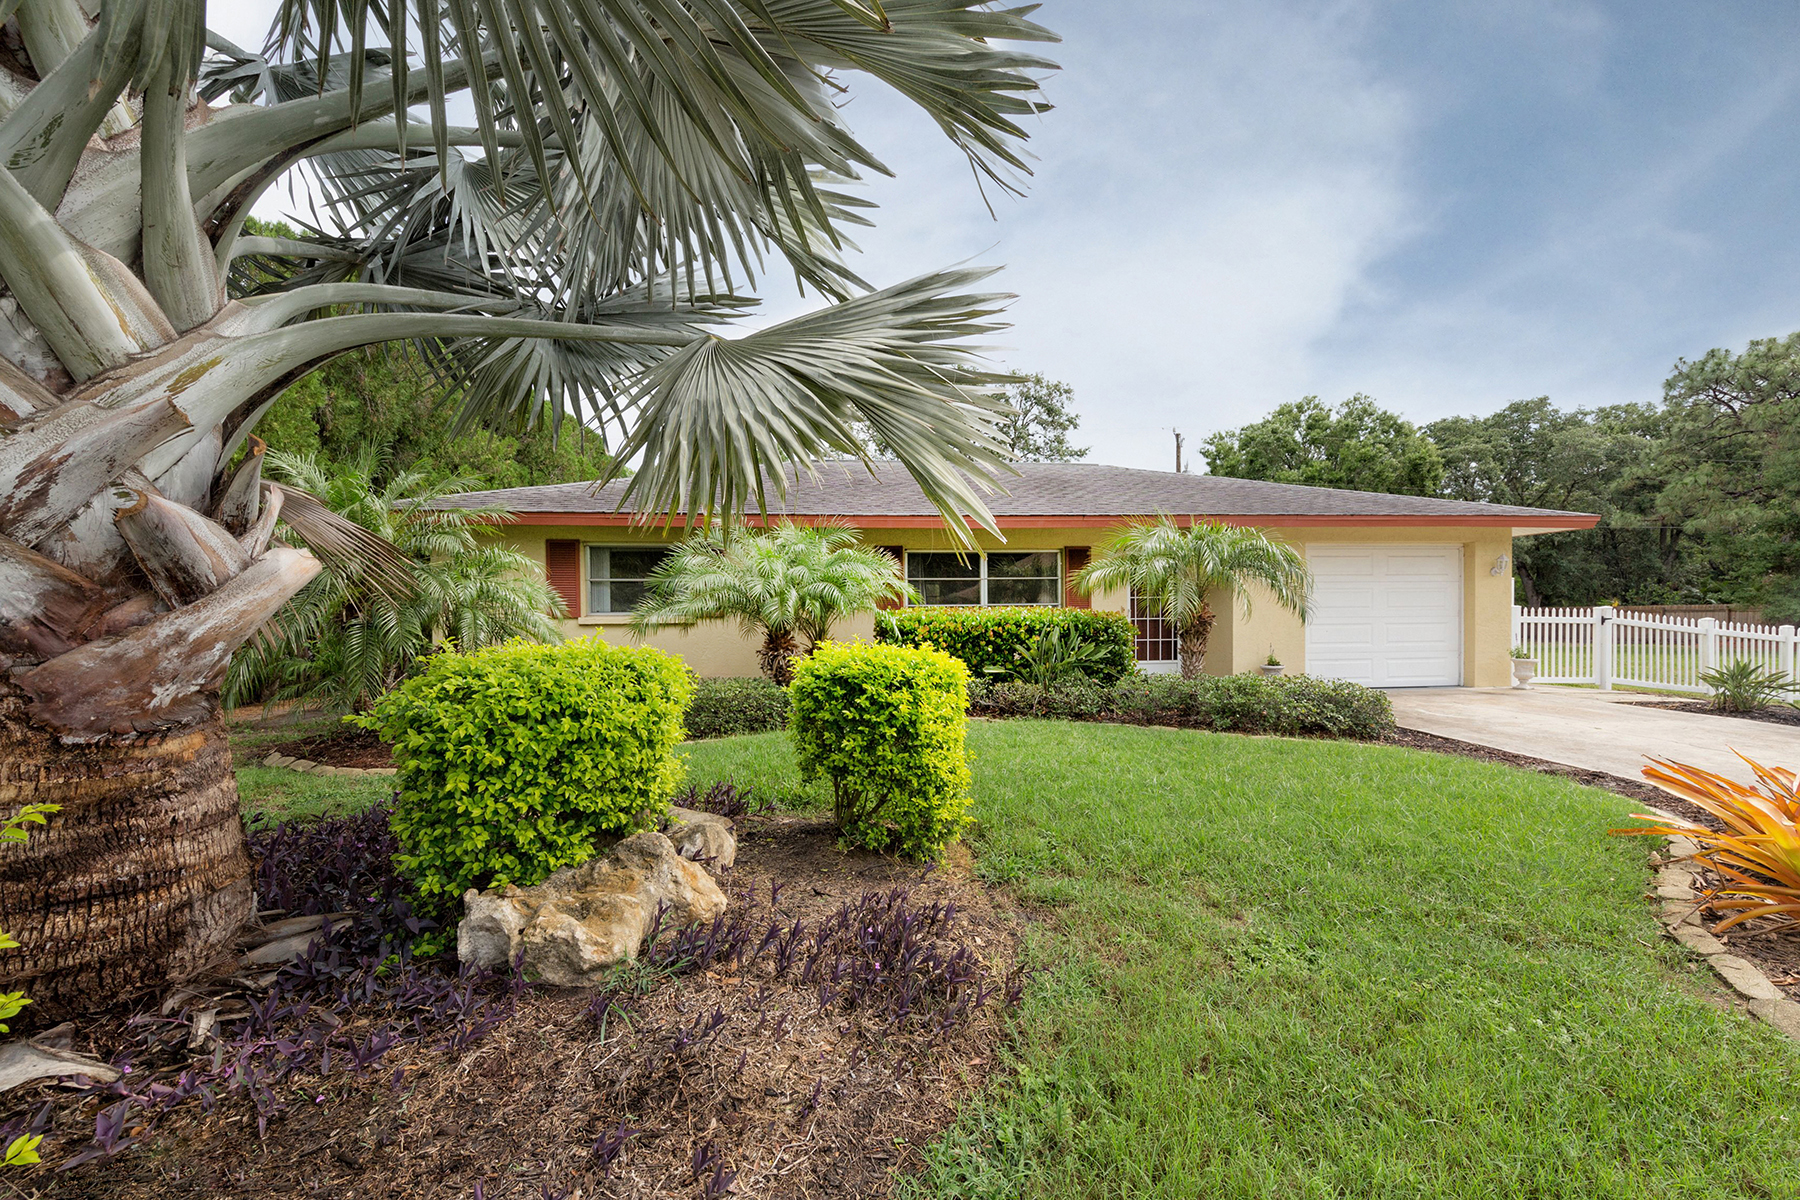 Single Family Home for Sale at SOUTH VENICE 755 Morningside Rd Venice, Florida, 34293 United States